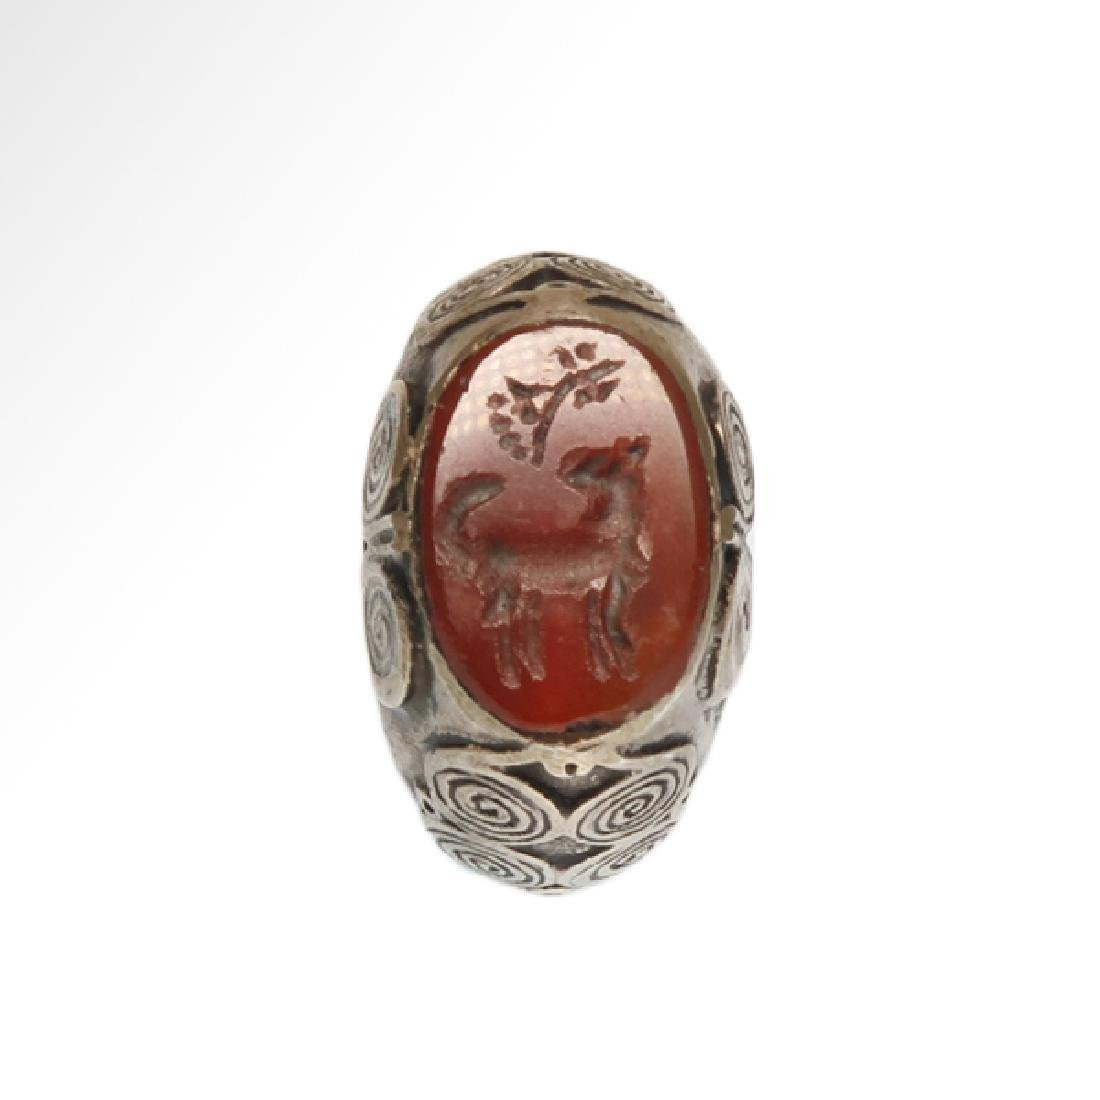 Viking Silver and Cornelian Ring, c. 10th Century A.D.